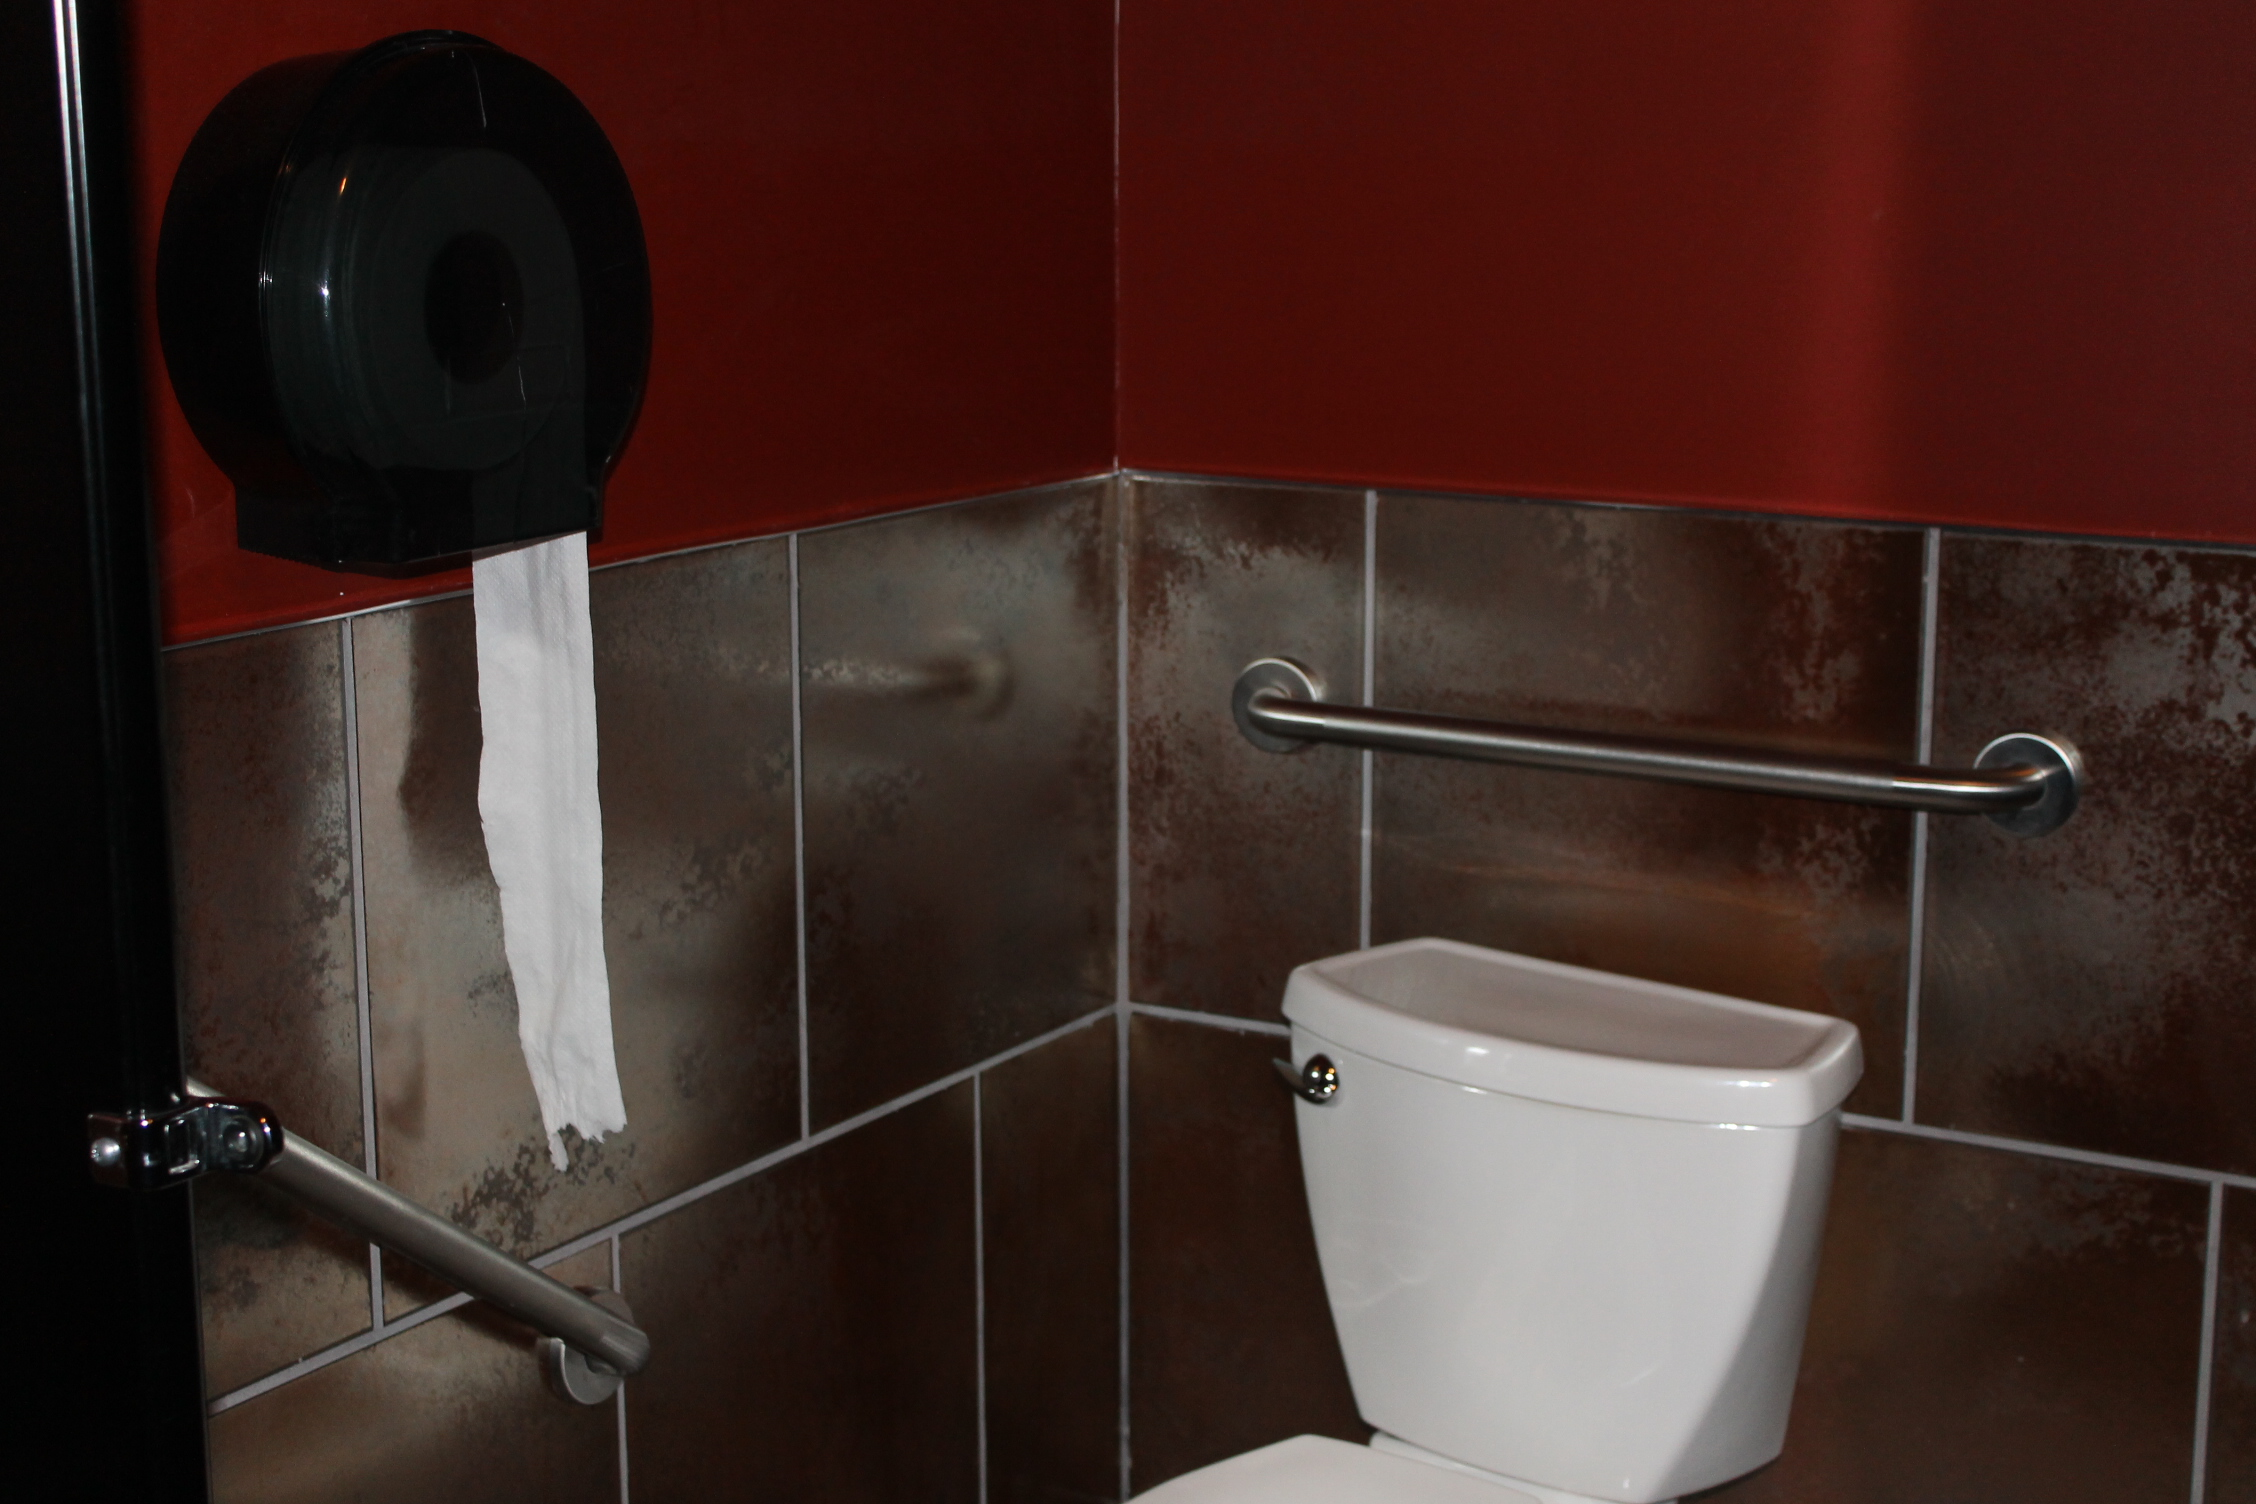 Picture of the accessible washroom.